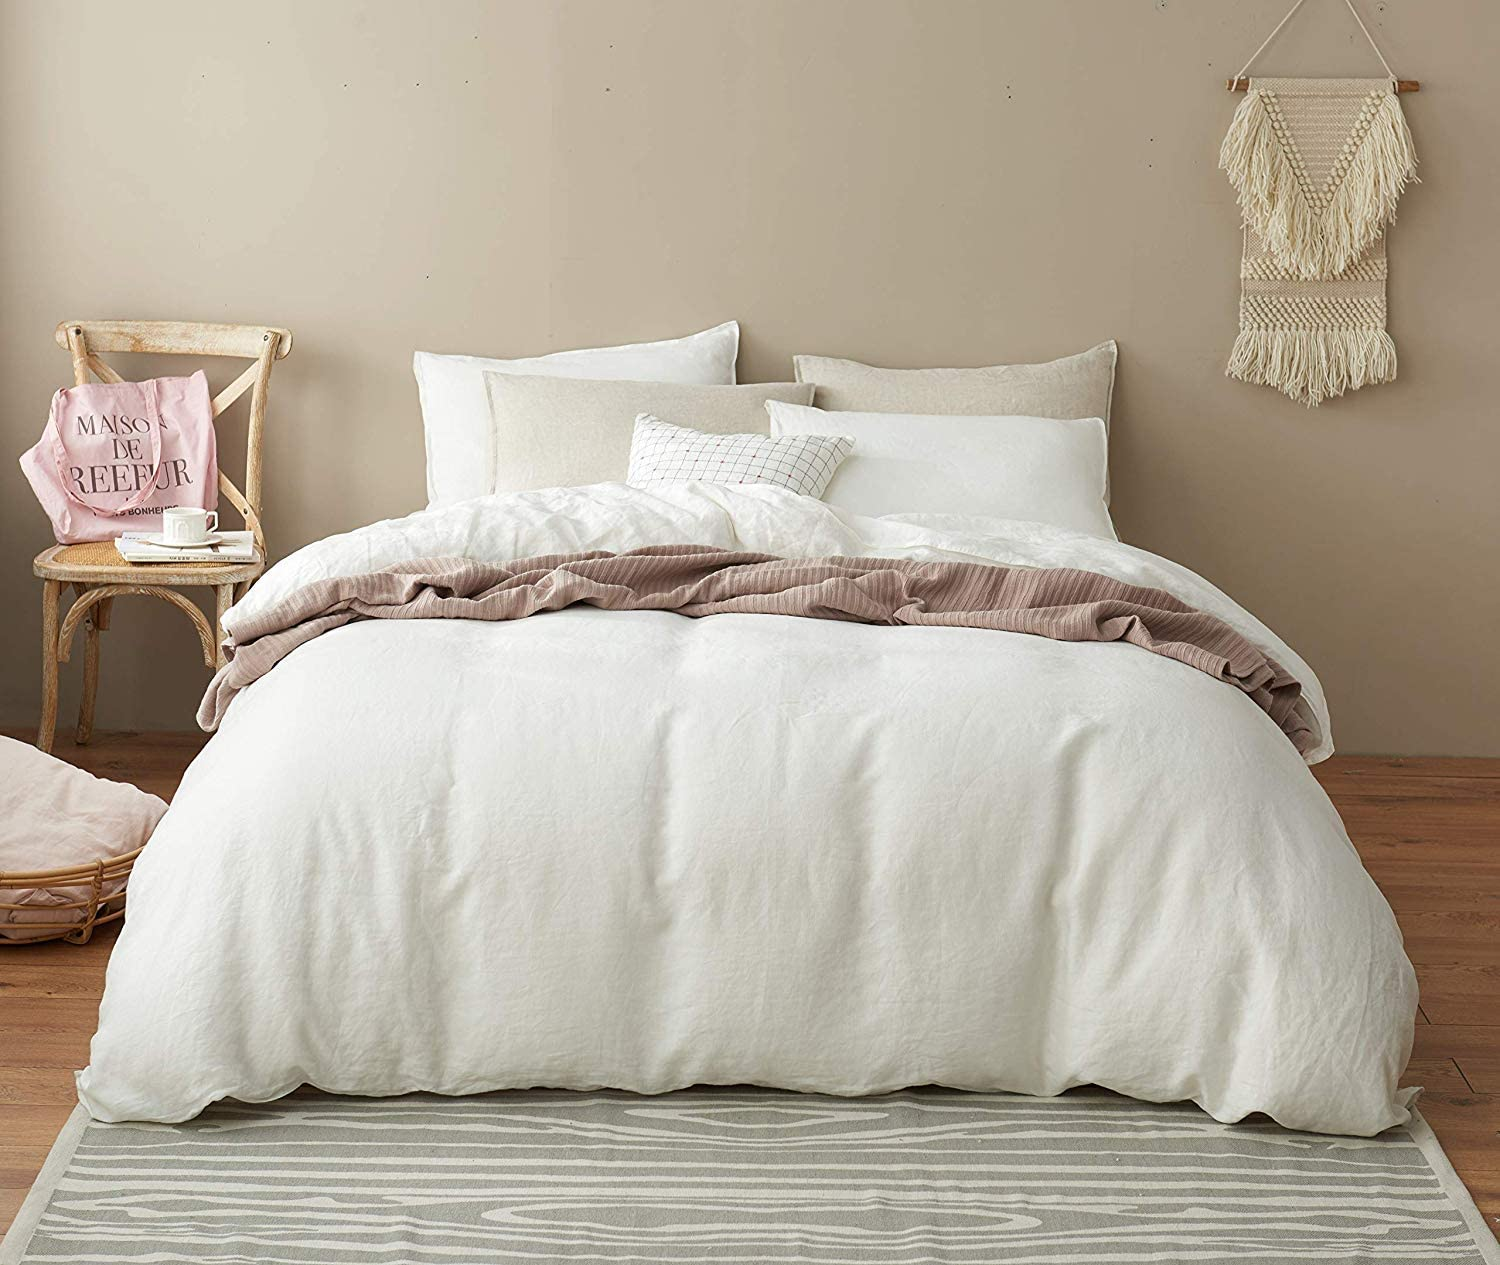 DAPU Pure Linen Duvet Cover Stone Washed European Flax(Full/Queen, Off White, Duvet Cover and 2 Pillowcases